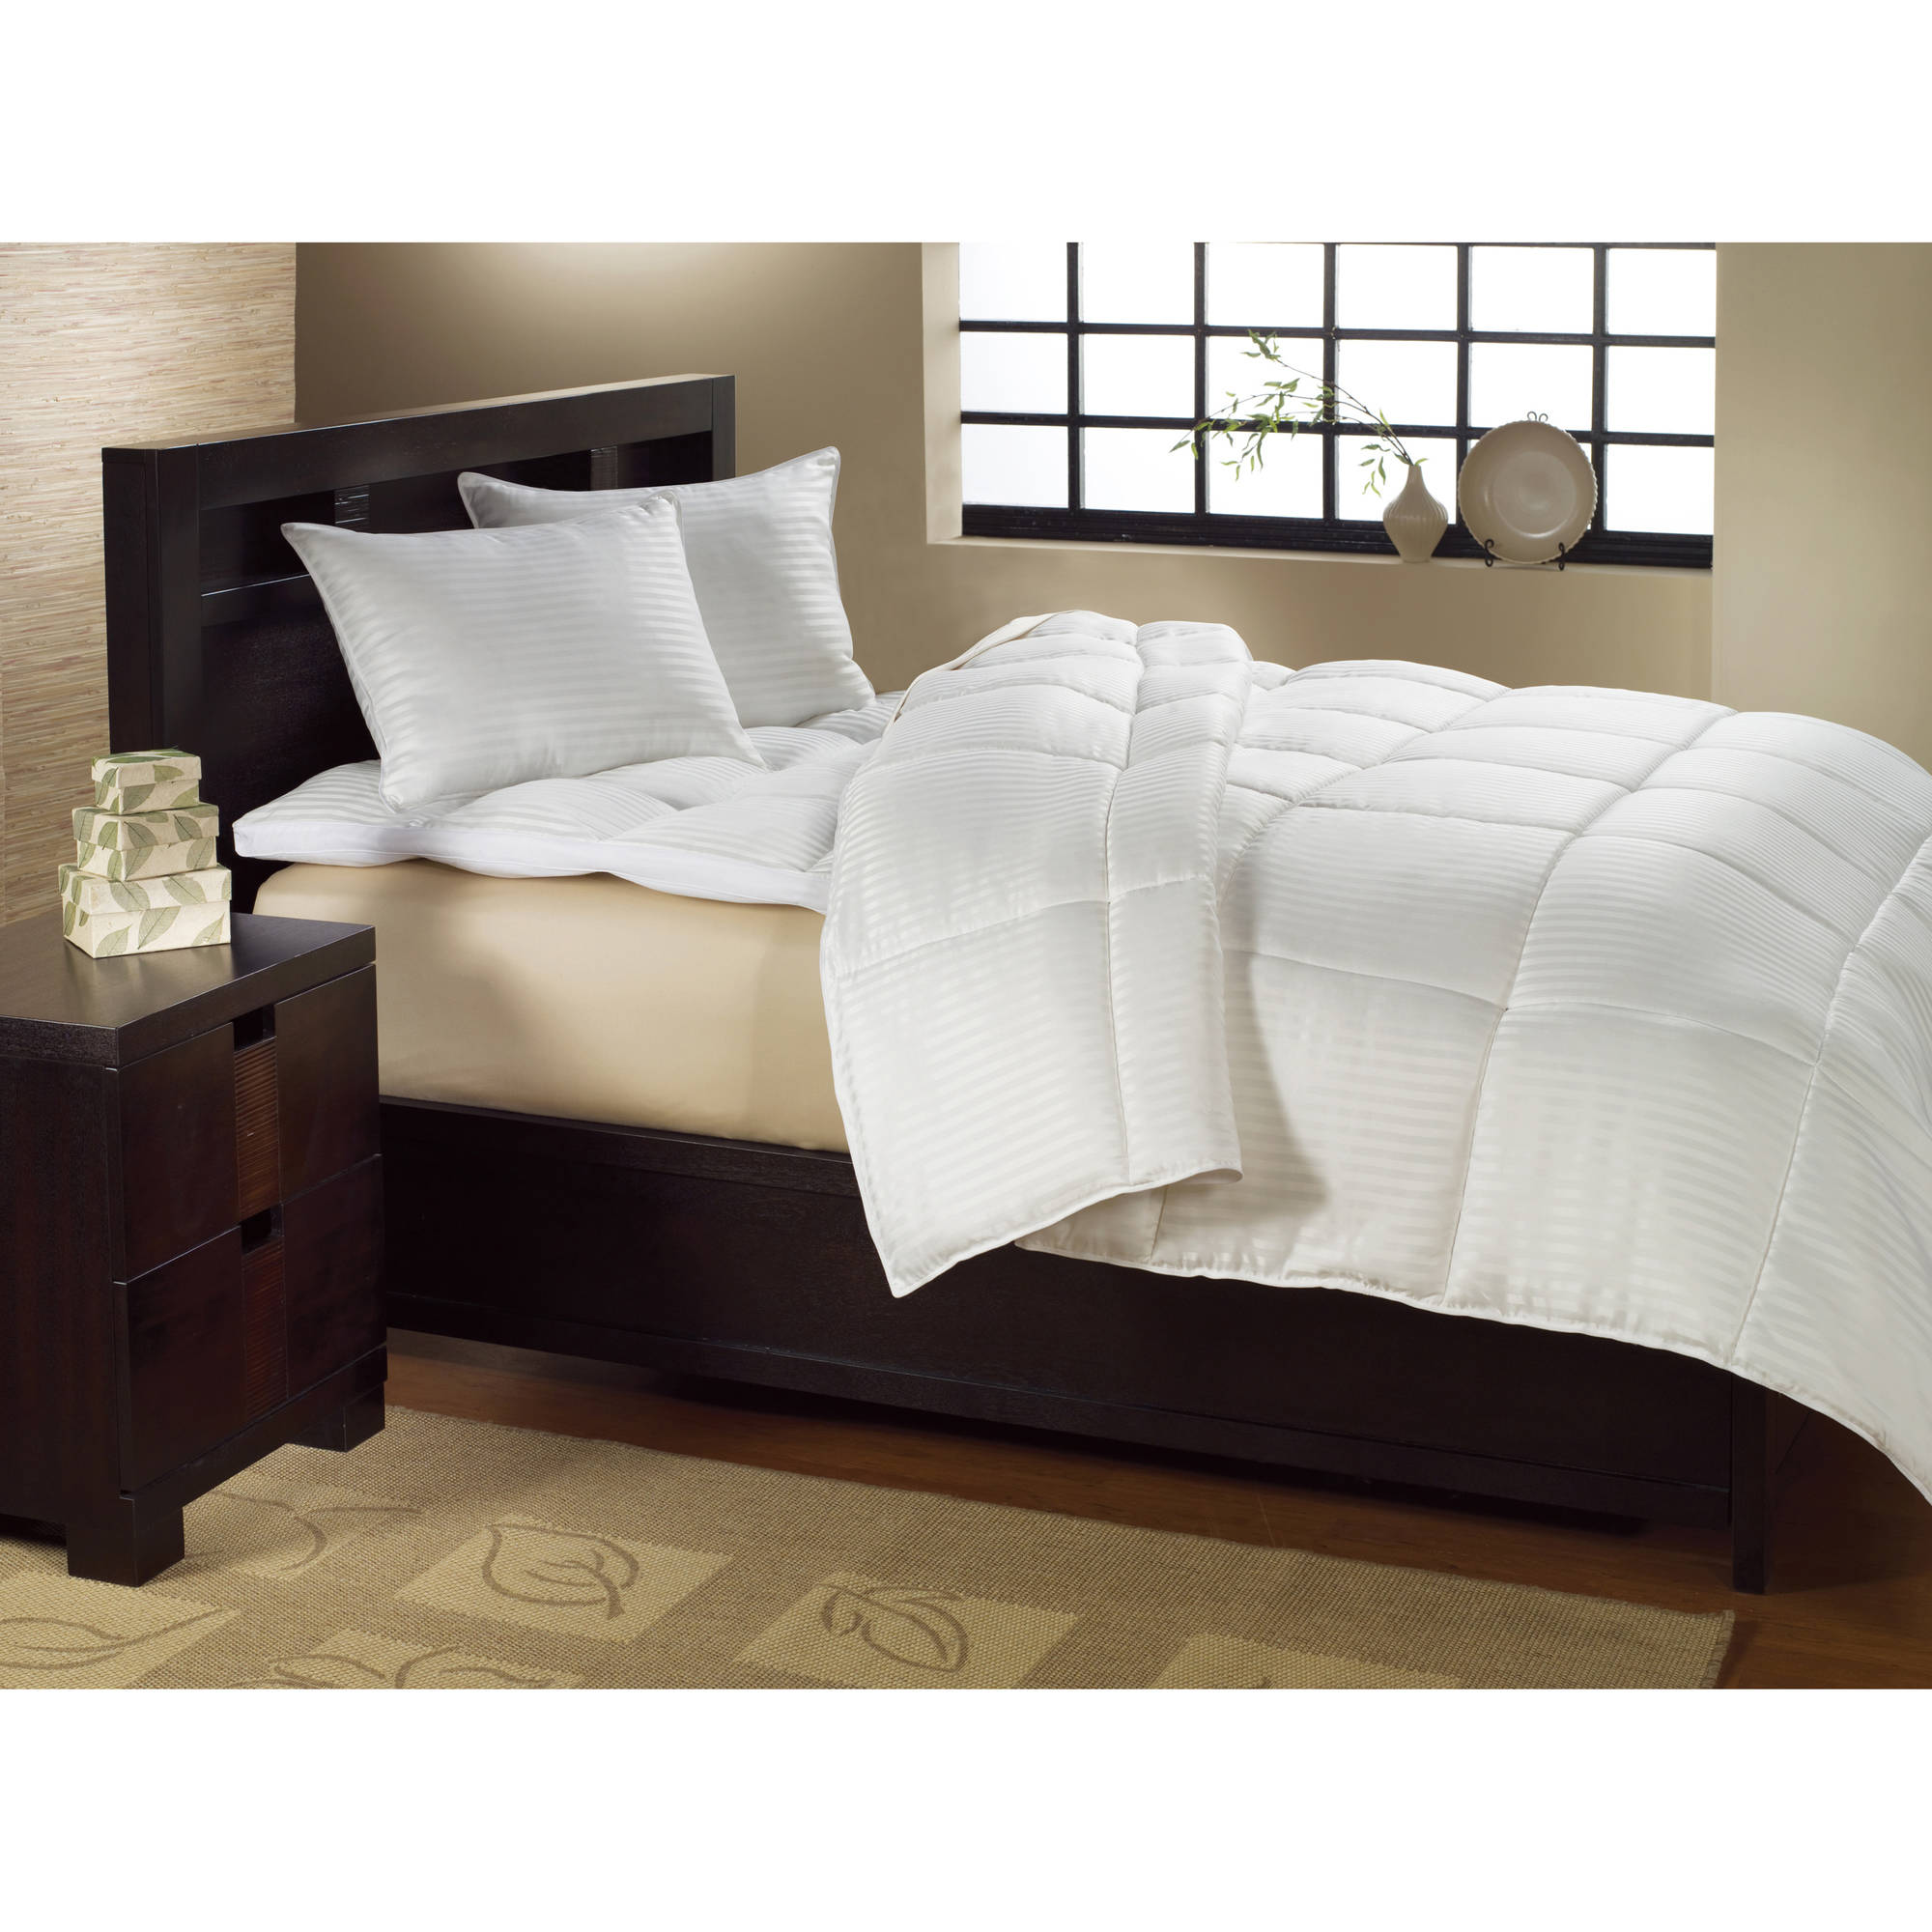 amazing better homes and garden sheets. Better Homes and Gardens Down Fusion Lightweight Warmth Comforter  Walmart com